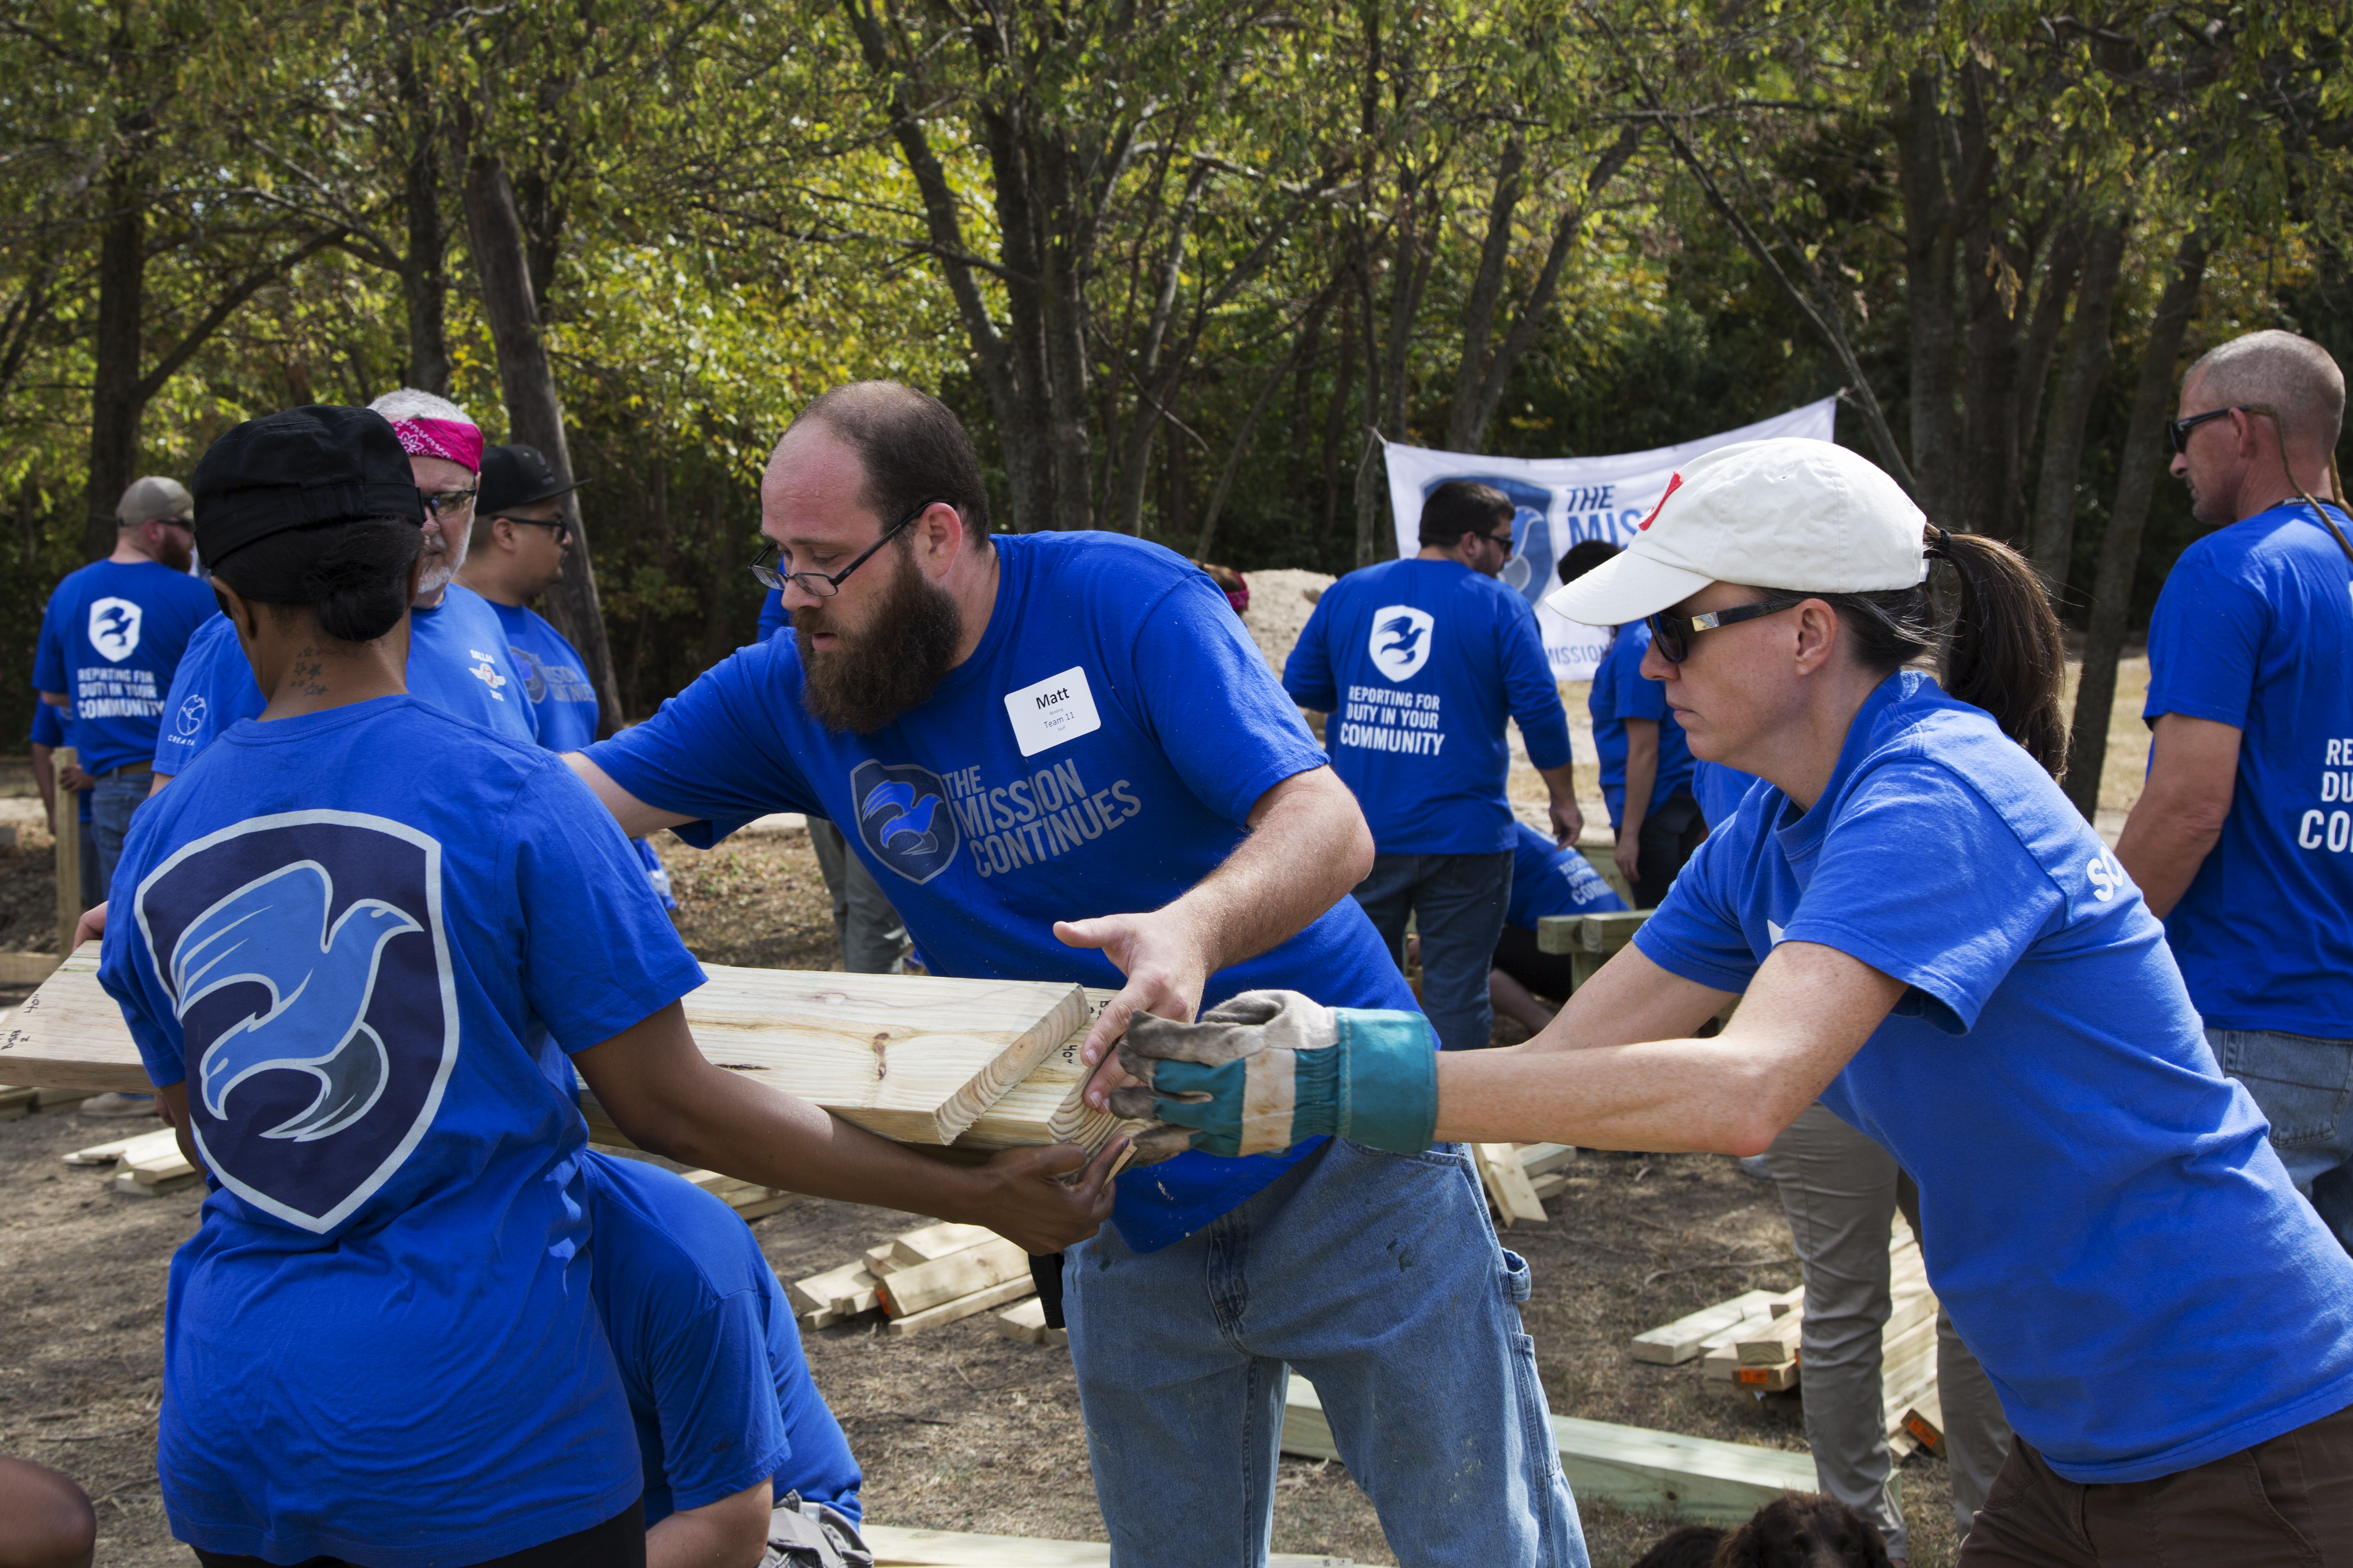 Members of Delta Class 2015 construct benches for the Avenue J facility.